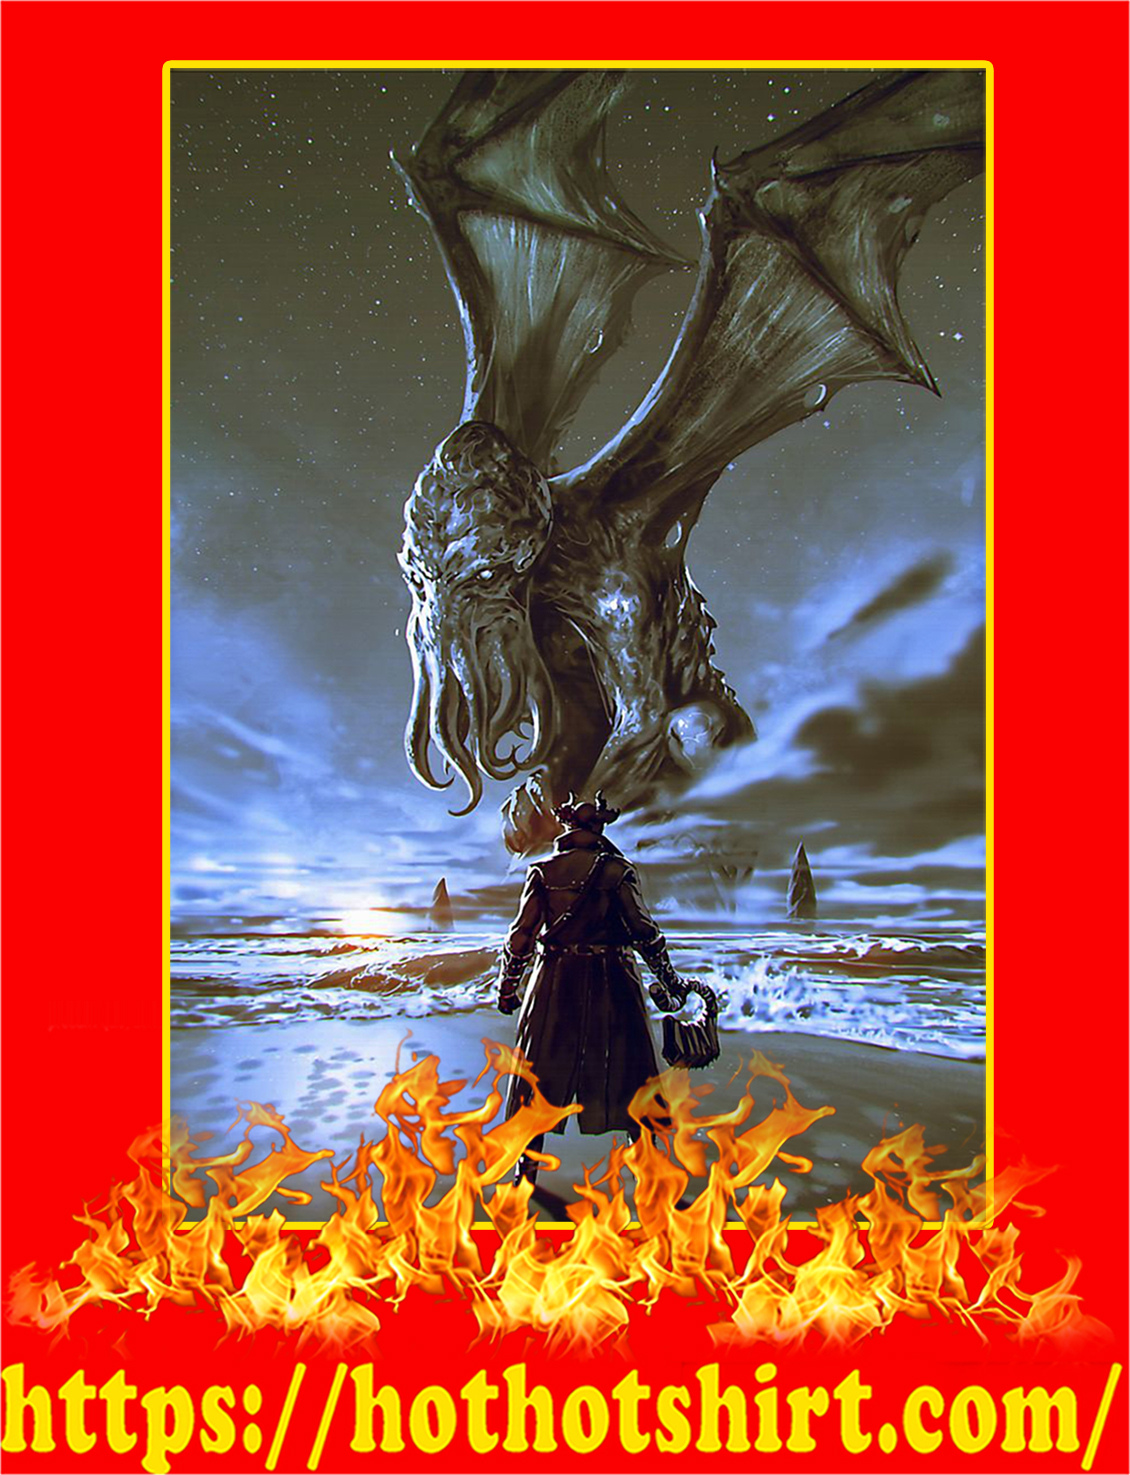 The Call of Cthulhu Poster - A3